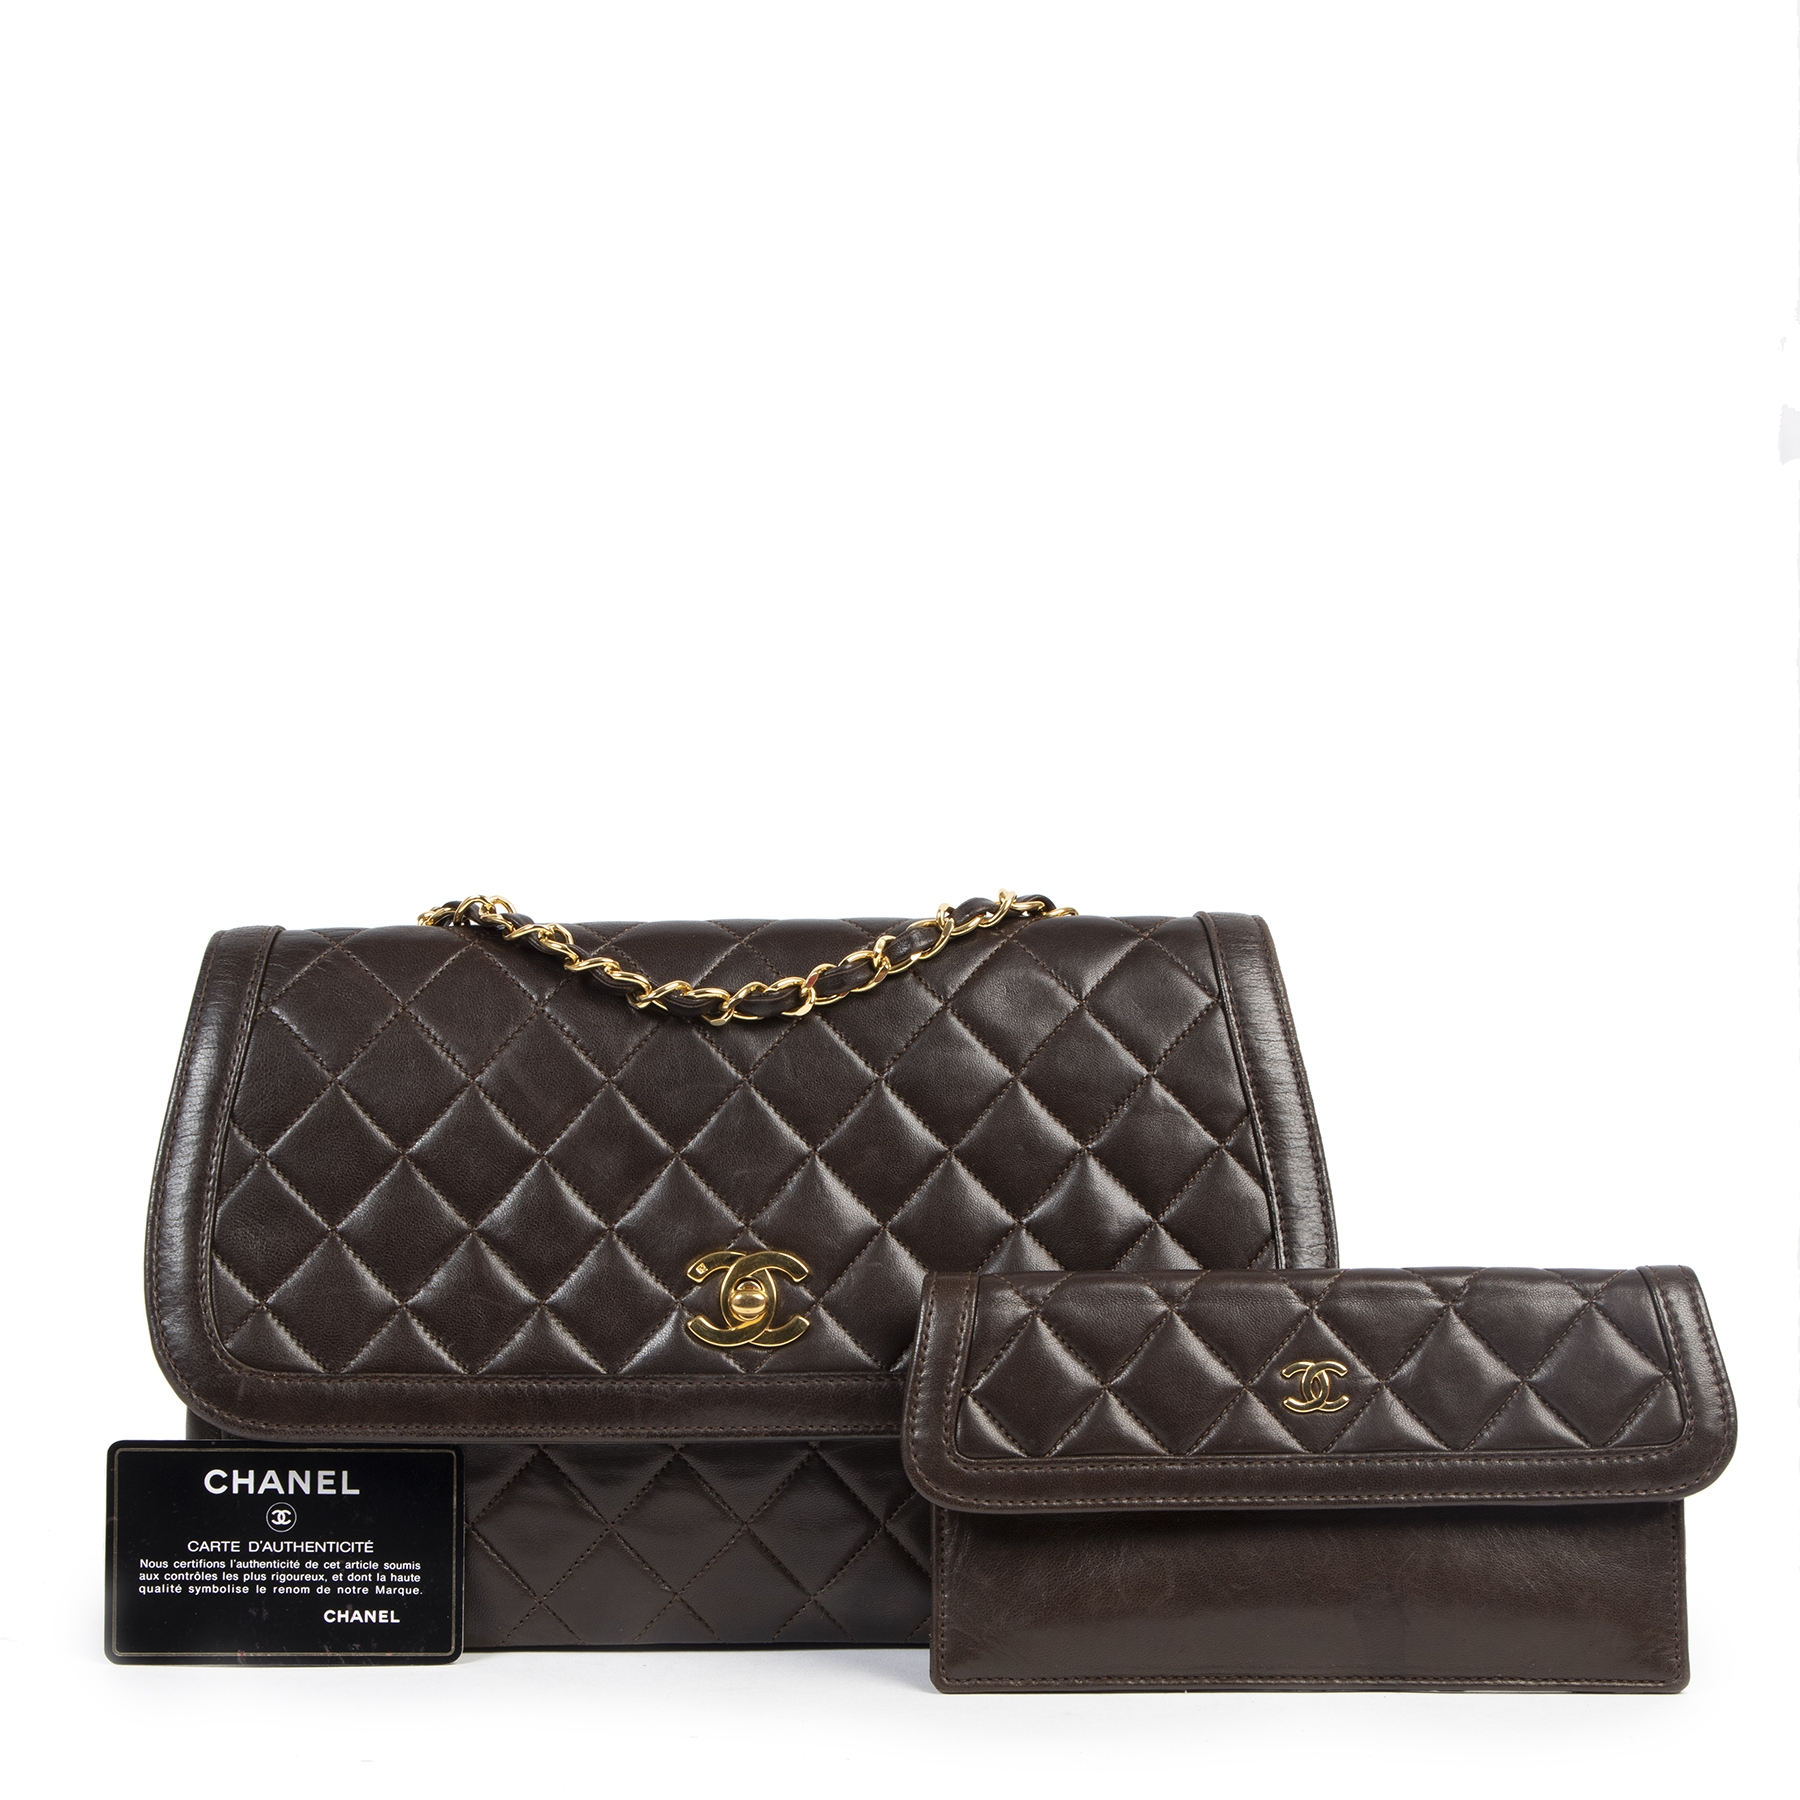 Chanel Vintage Brown Quilted Flap Bag fir the best price online